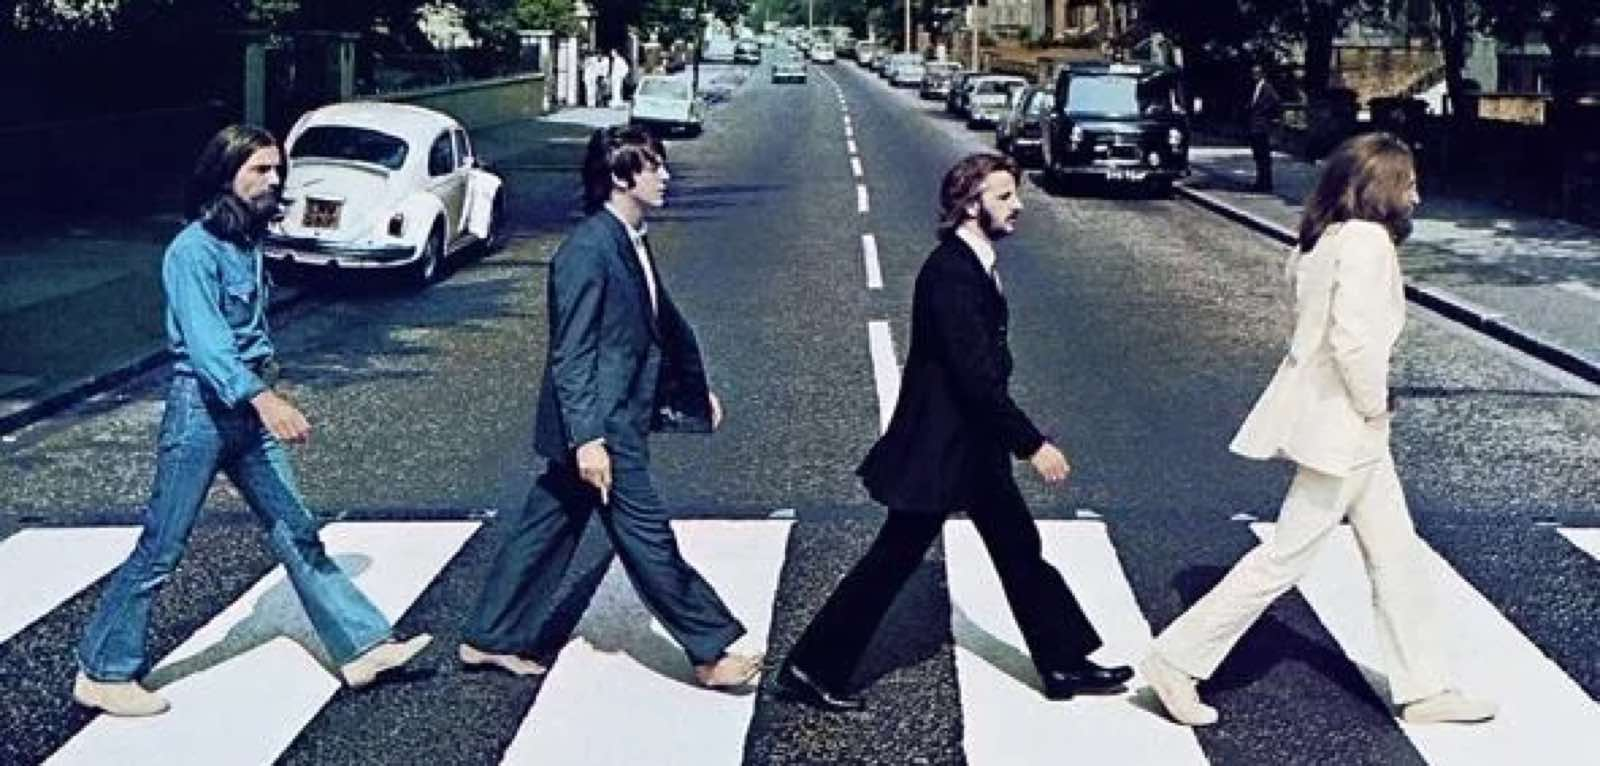 August 8, 1969: The Beatles snapped the photo that changed Abbey Road's future forever